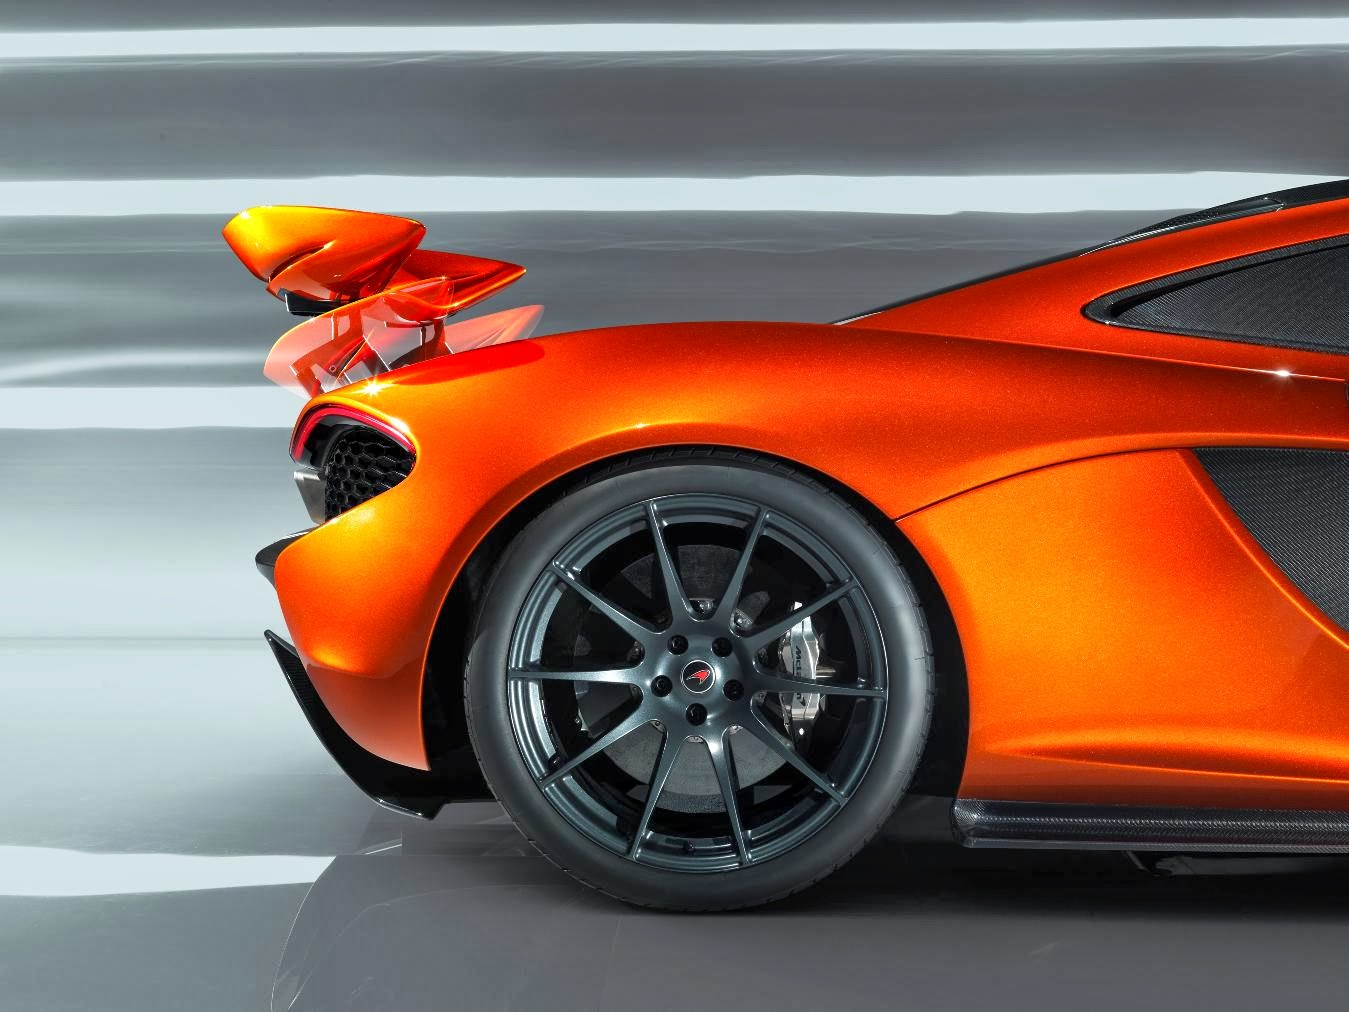 McLaren P1 with Window-Shaped Carbon Fibre?